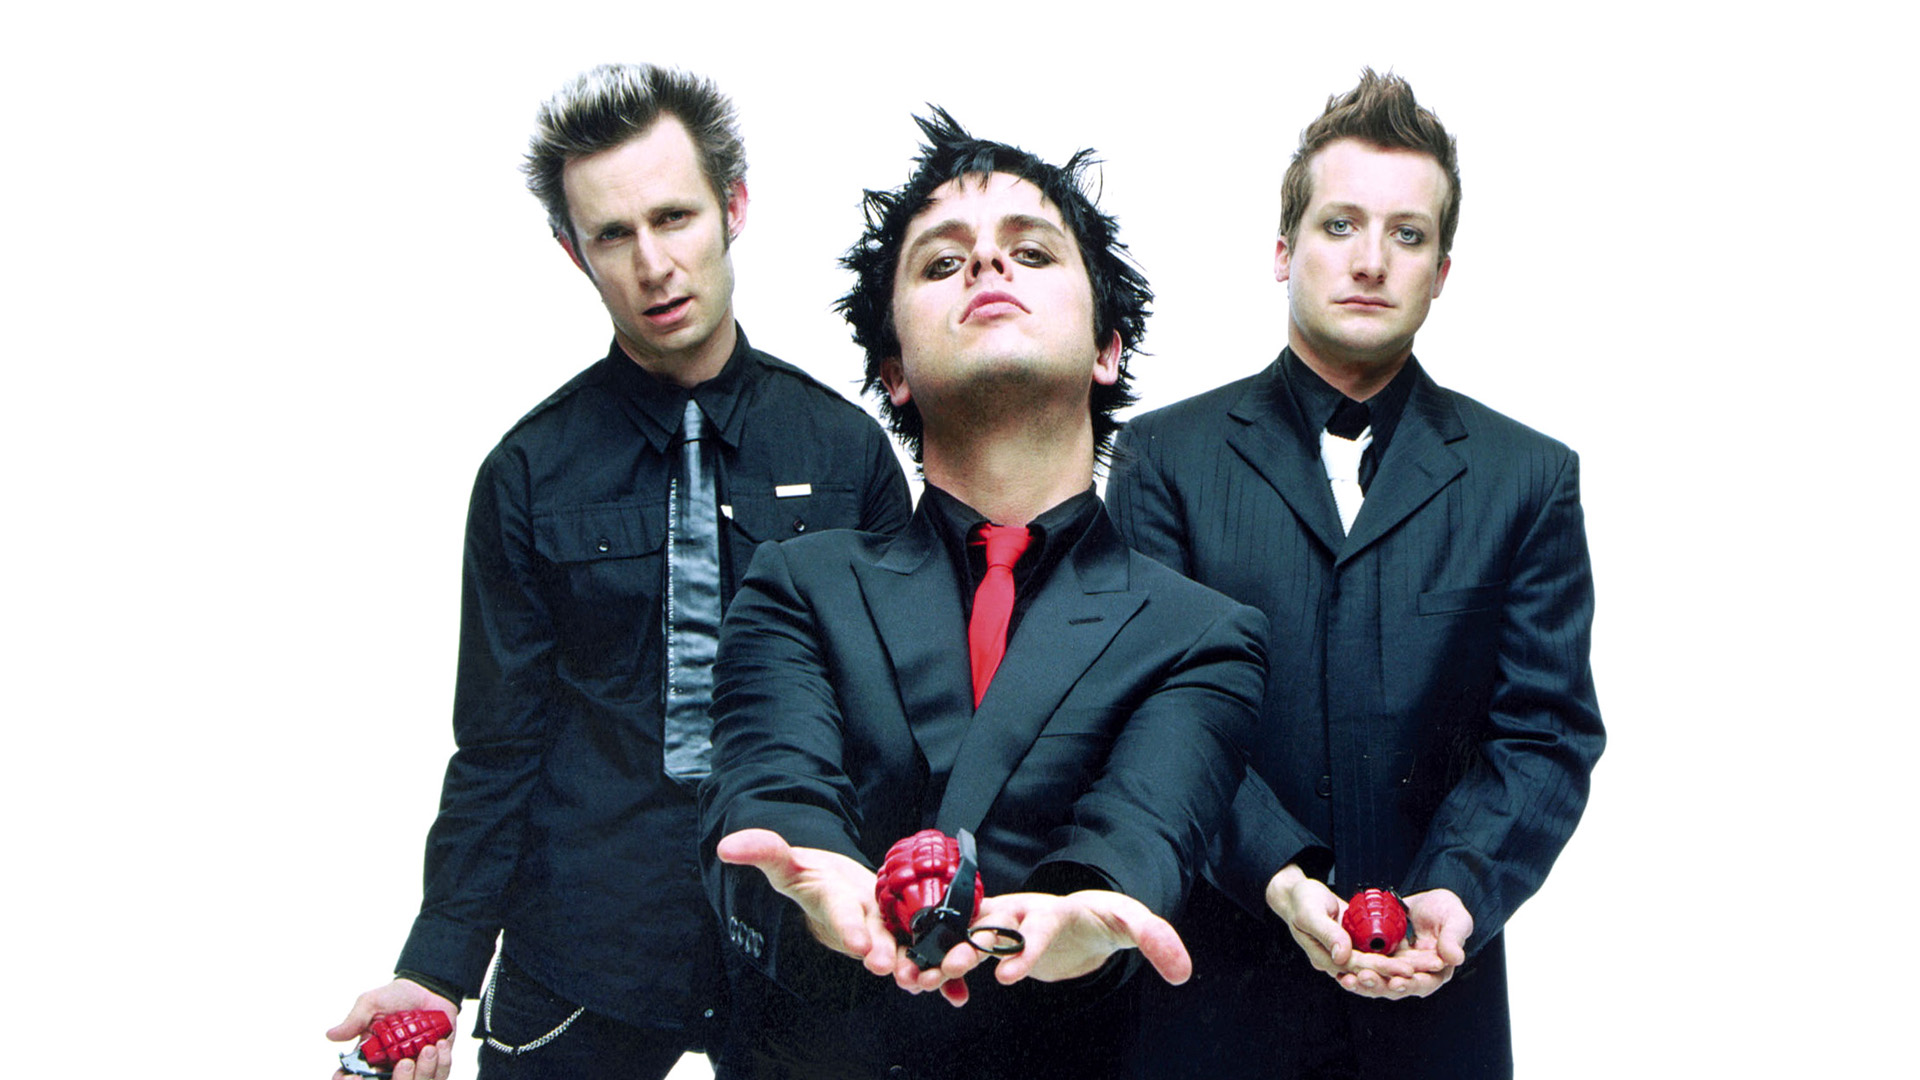 Green Day Hd Wallpaper Background Image 1920x1080 Id 199624